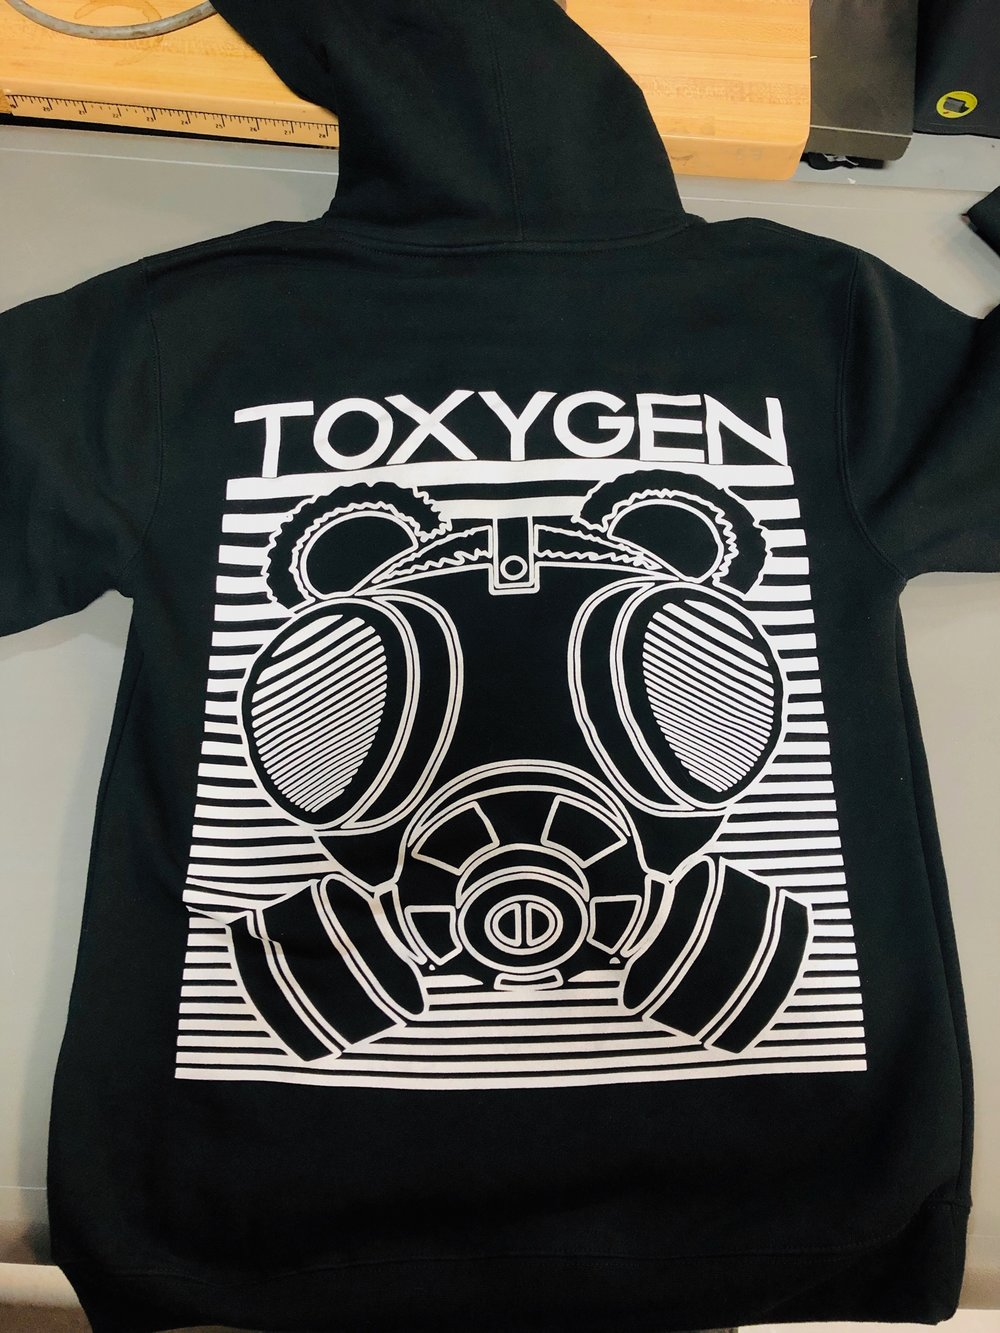 logounltd_laser_etching_embroidery_screen_printing_apparel_uniform_custom_tshirts_kirkland_bellevue_seattle_redmond_woodinville_branded_merchandise_promotional_products_logo_unltd_hoodies_toxygen (4).JPG